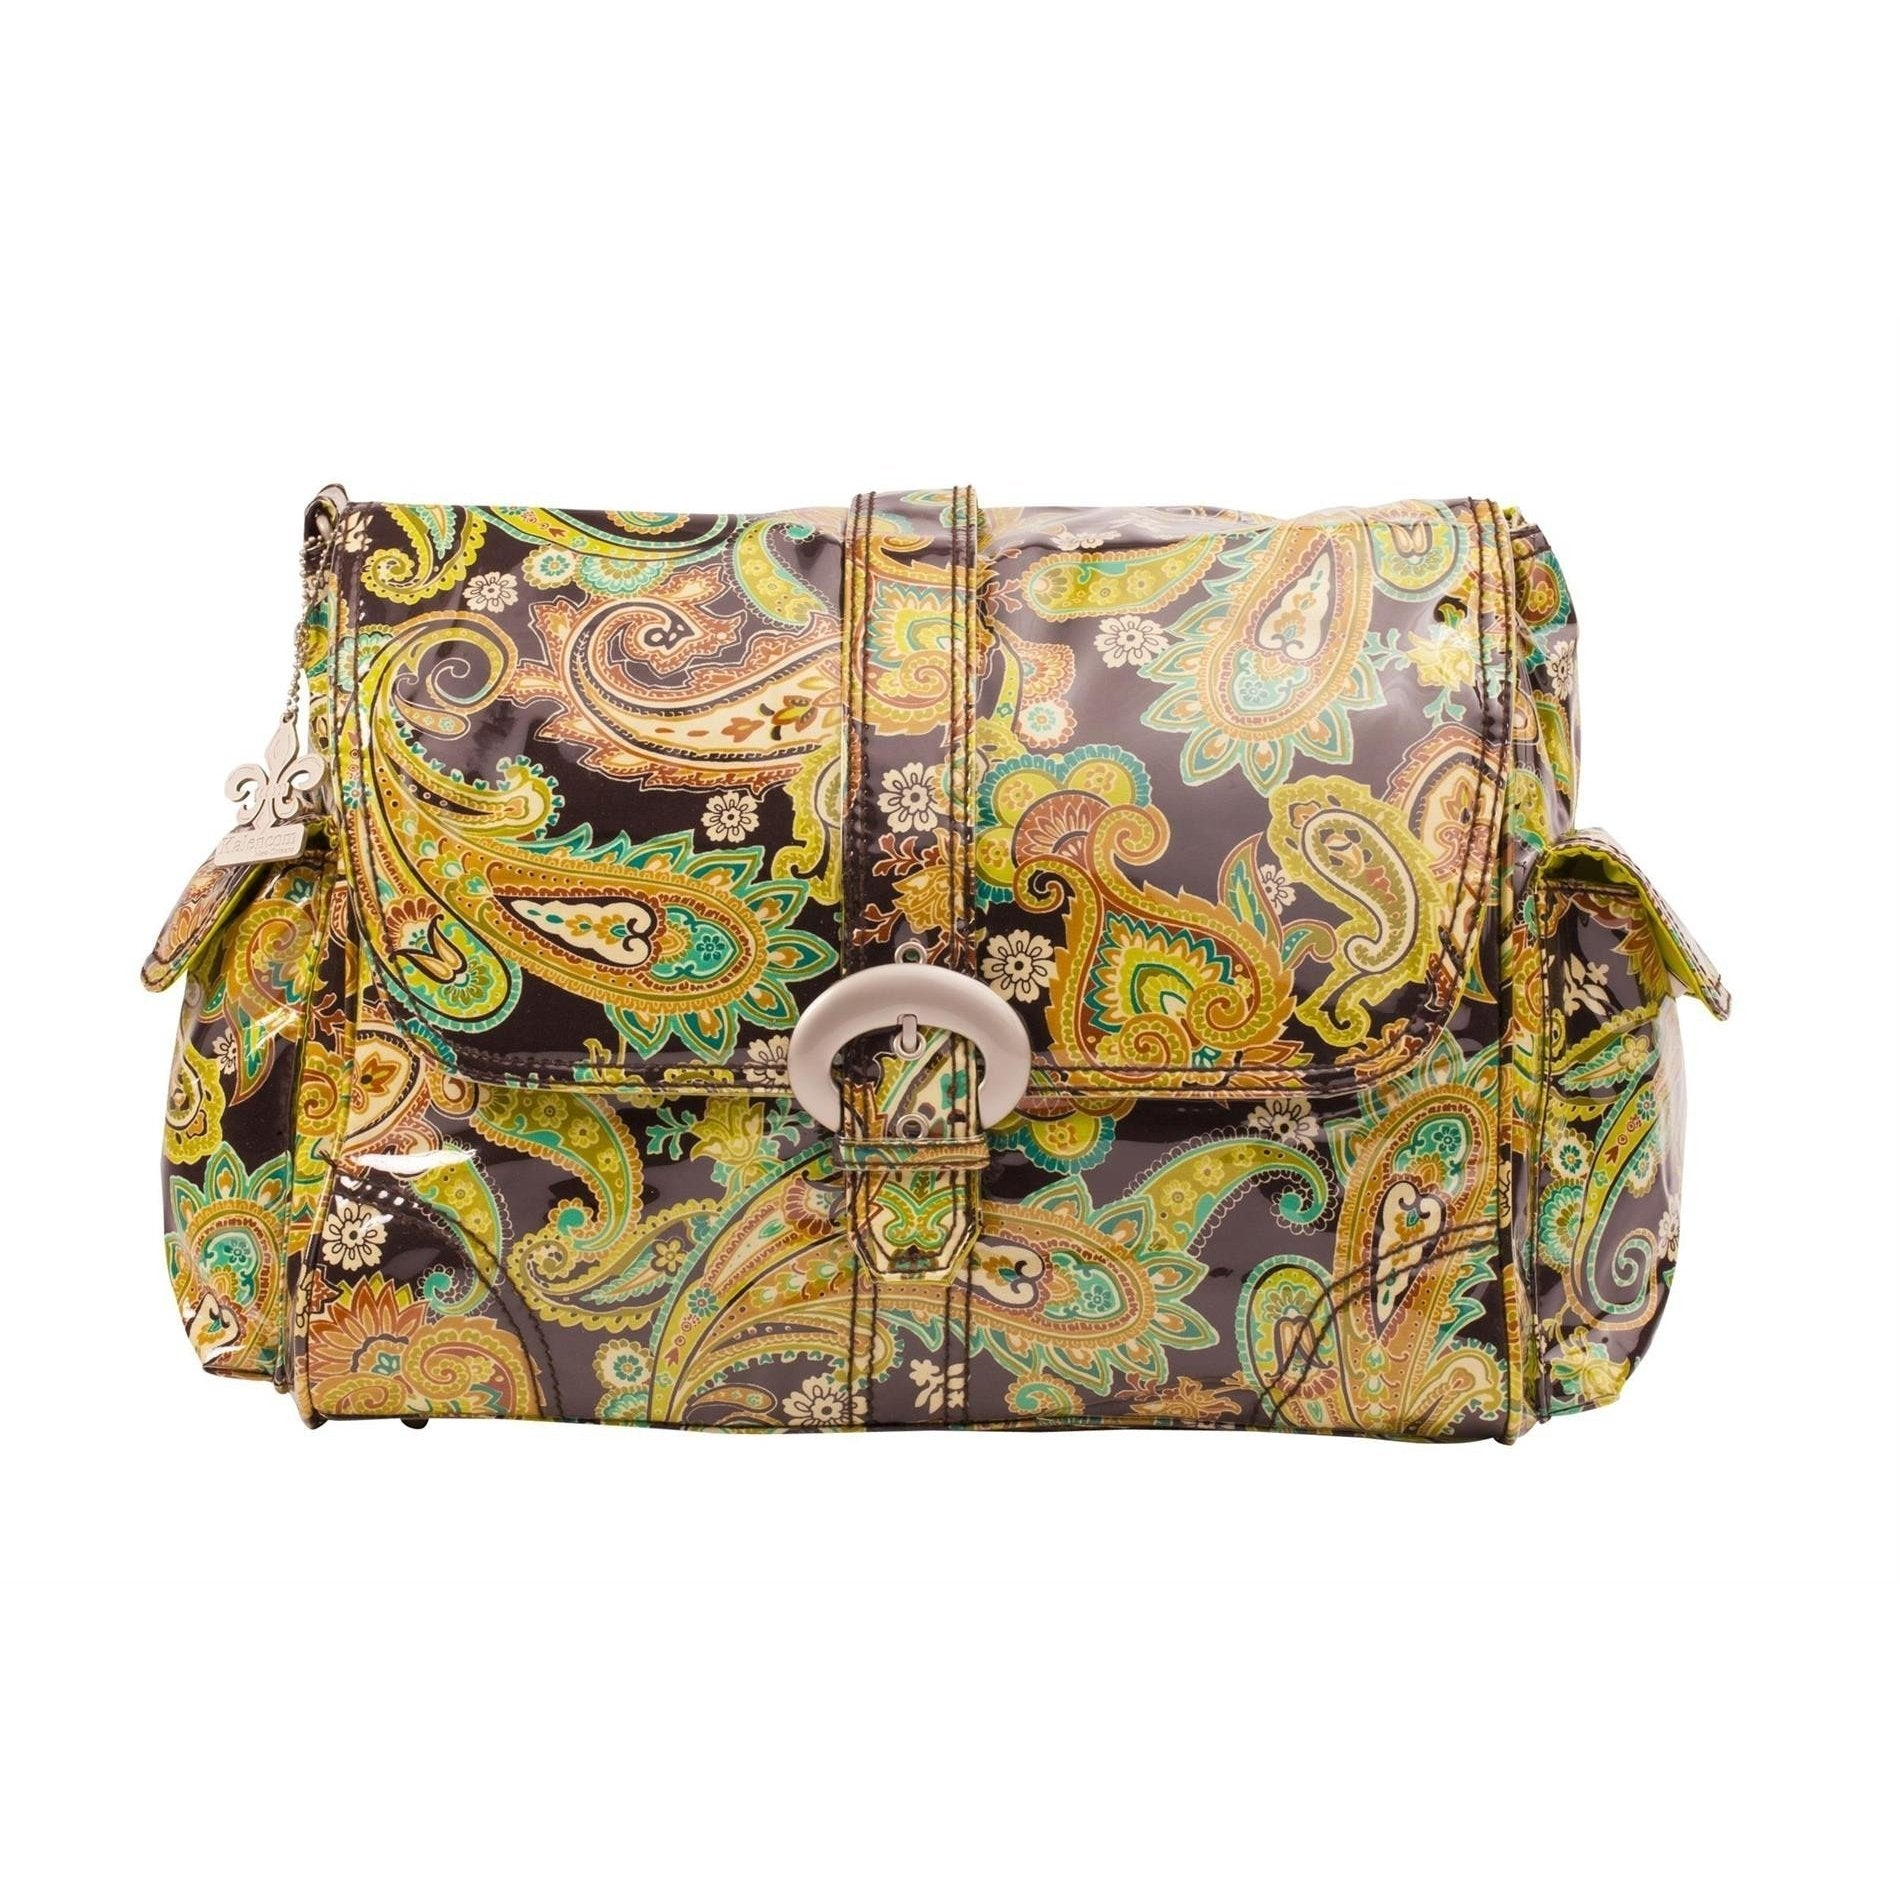 Multi Paisley - Pistachio Laminated Buckle Diaper Bag | Style 2960 - Kalencom-Diaper Bags-Default-Jack and Jill Boutique